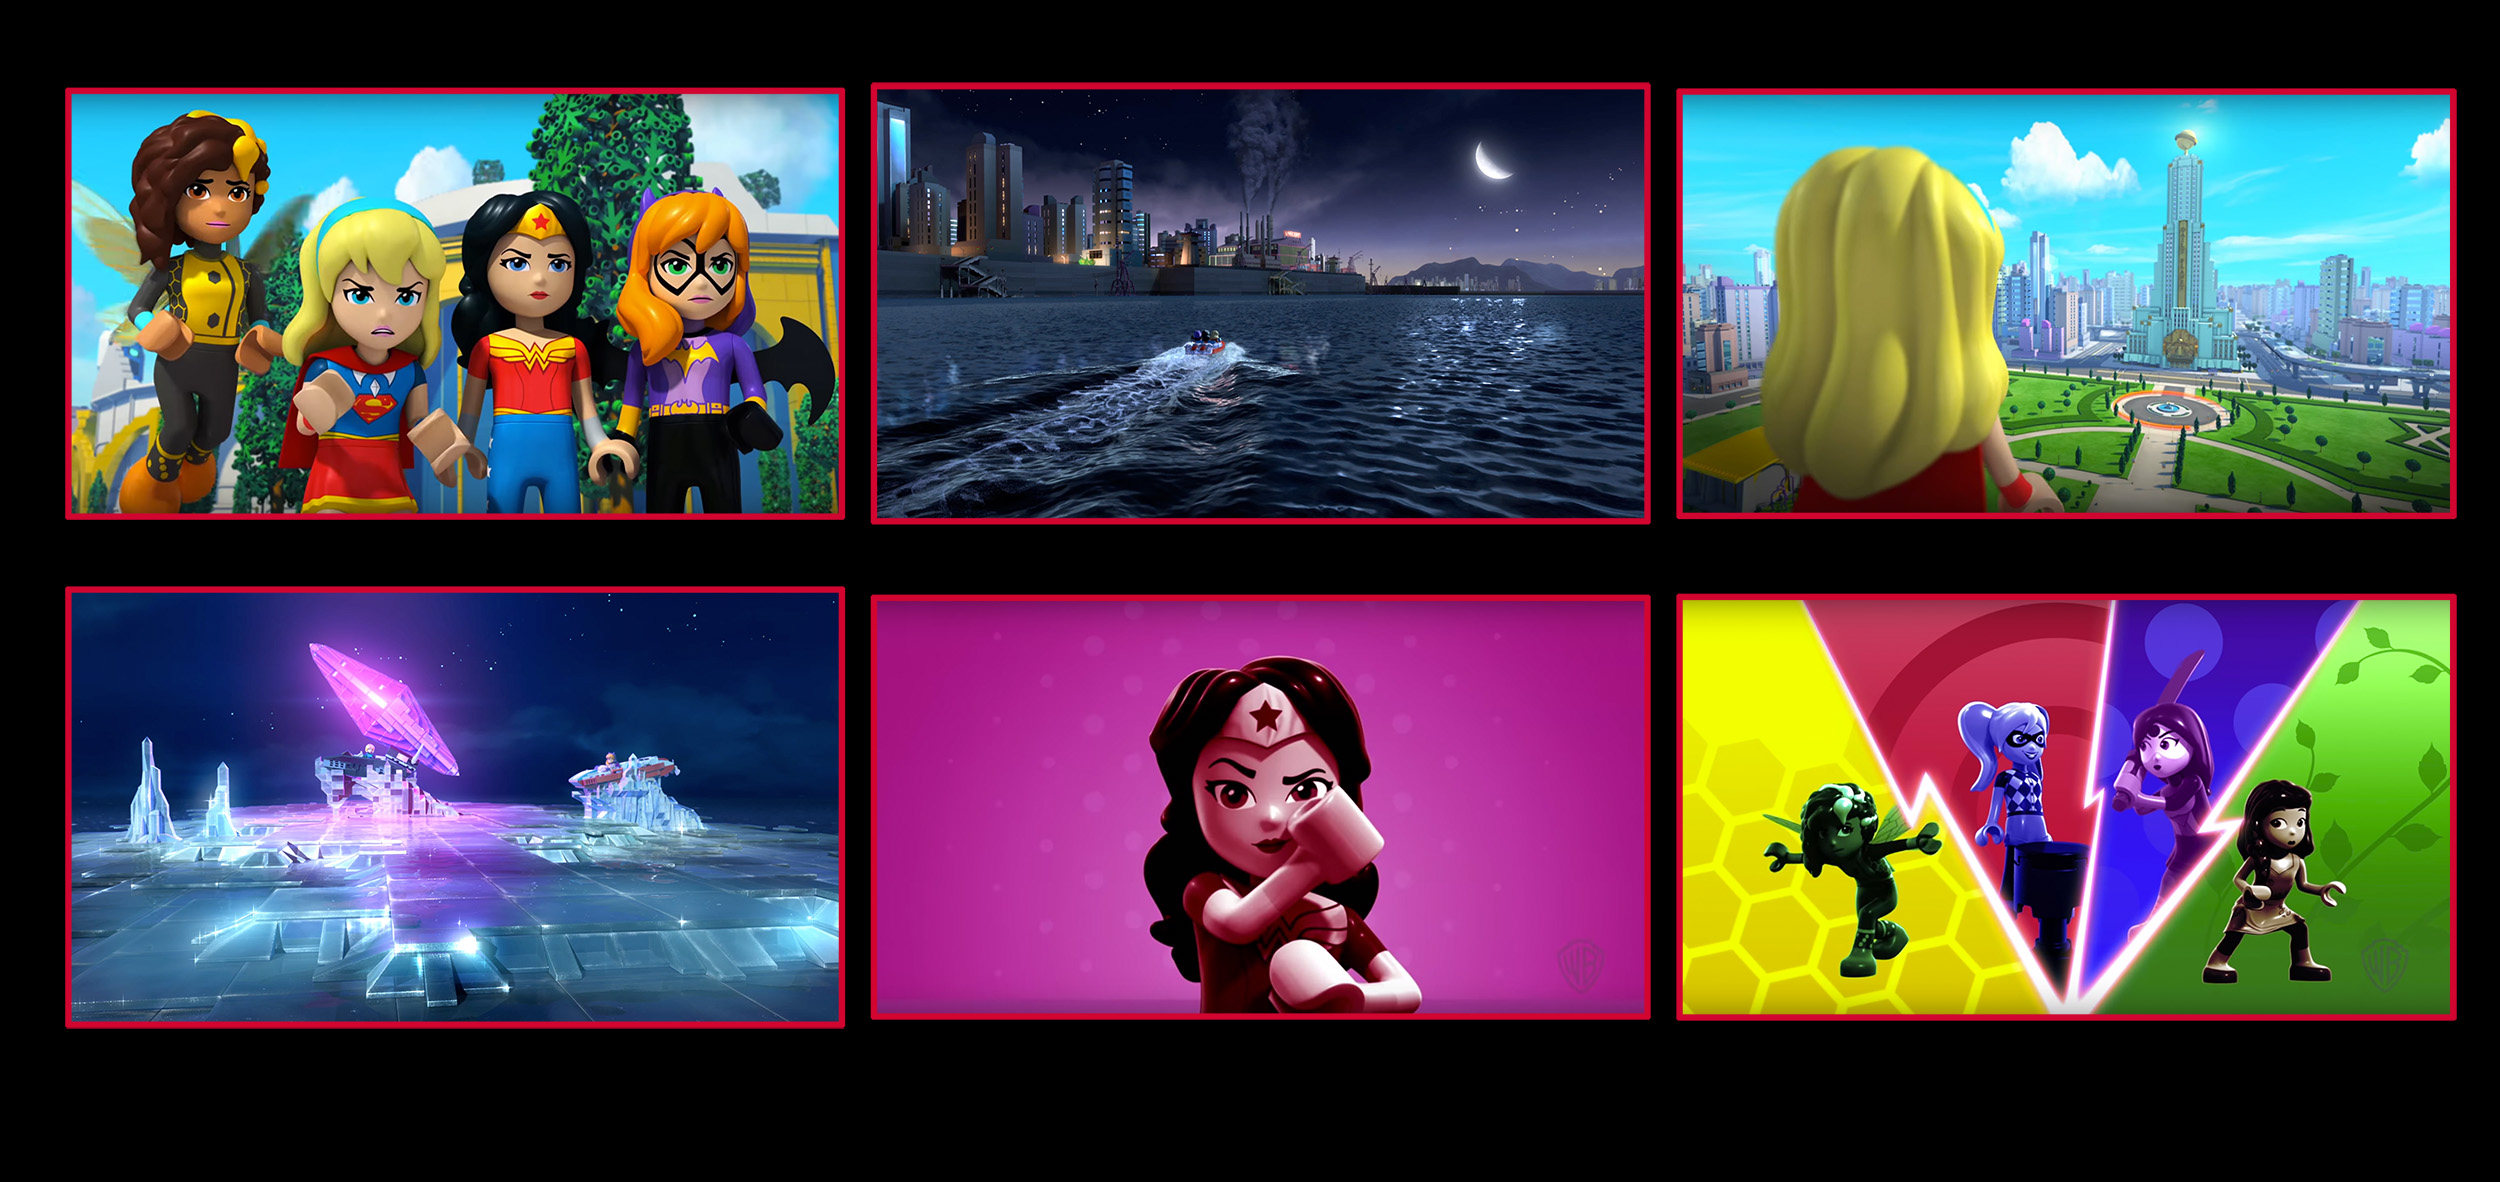 Lego DC Superhero Girls final frames